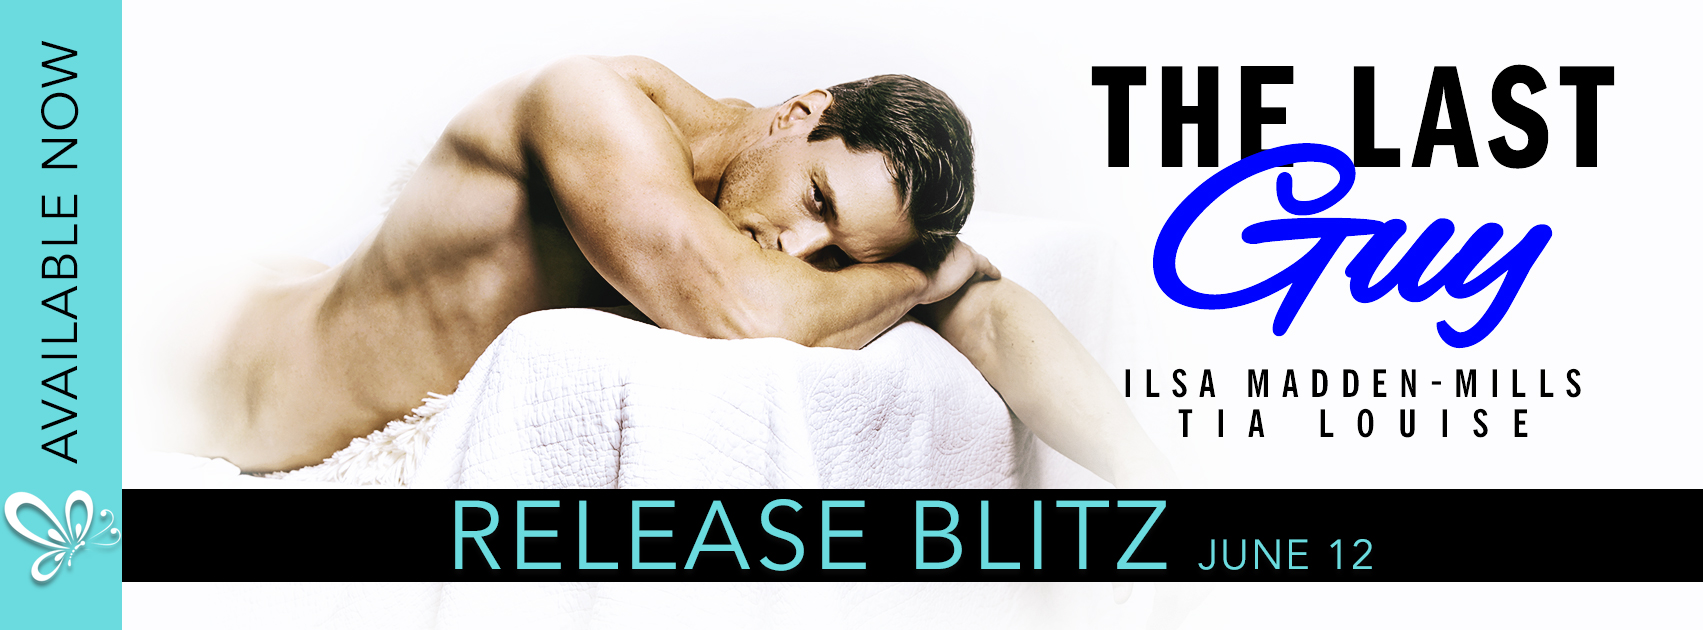 New Release: The Last Guy by Ilsa Madden-Mills & Tia Louise is LIVE!!!